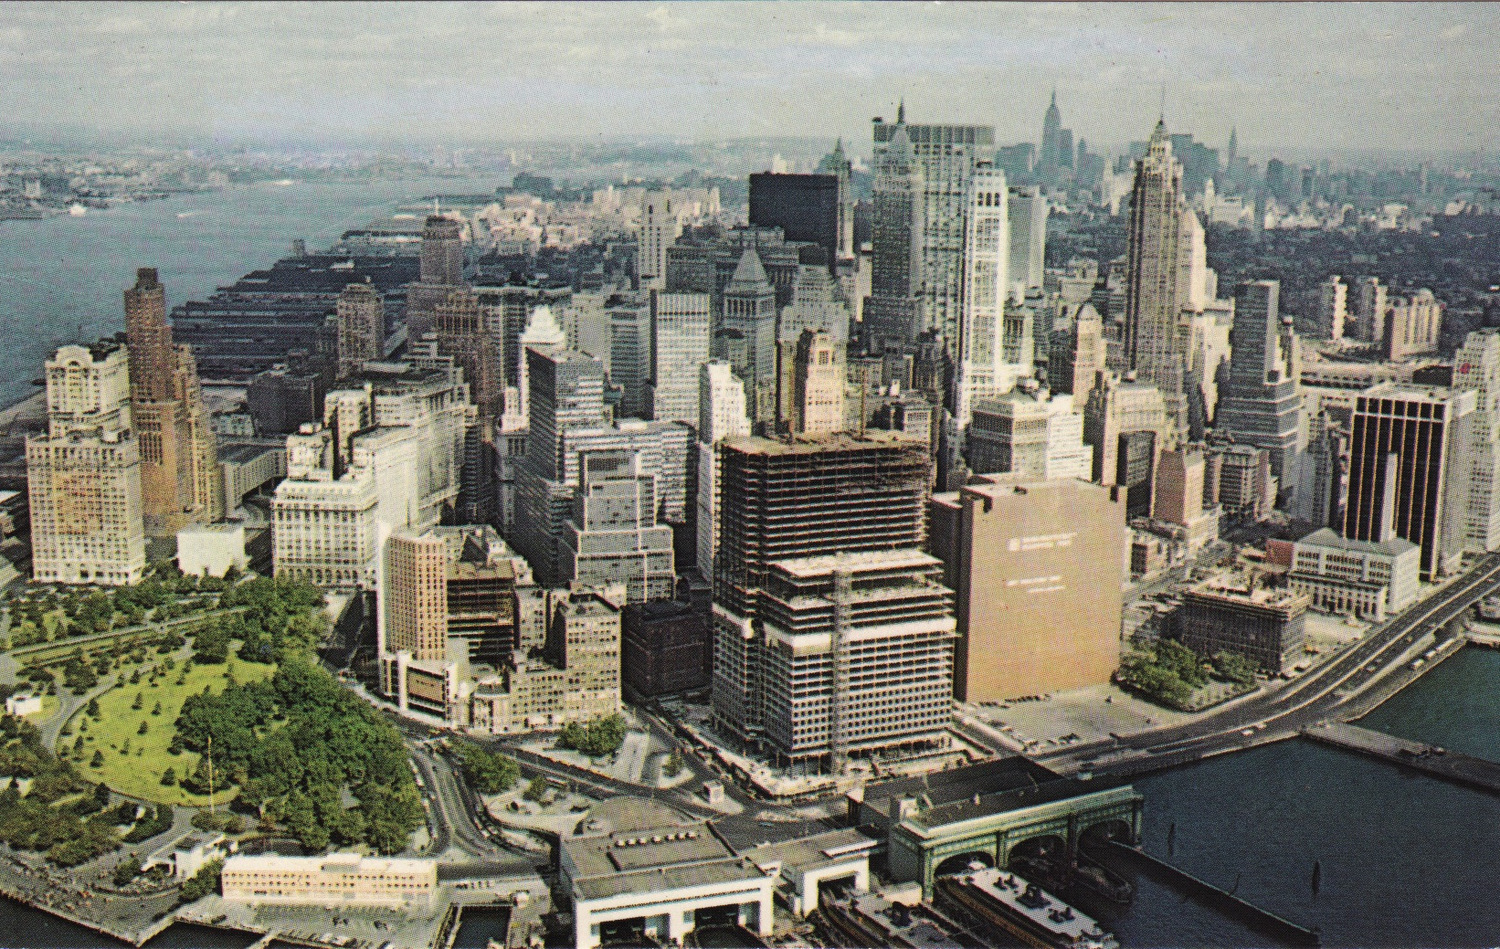 Looking northwest, change has begun as several boxy buildings are under construction near South Street and the FDR Drive as seen directly behind the Staten Island Ferry terminal (1965).